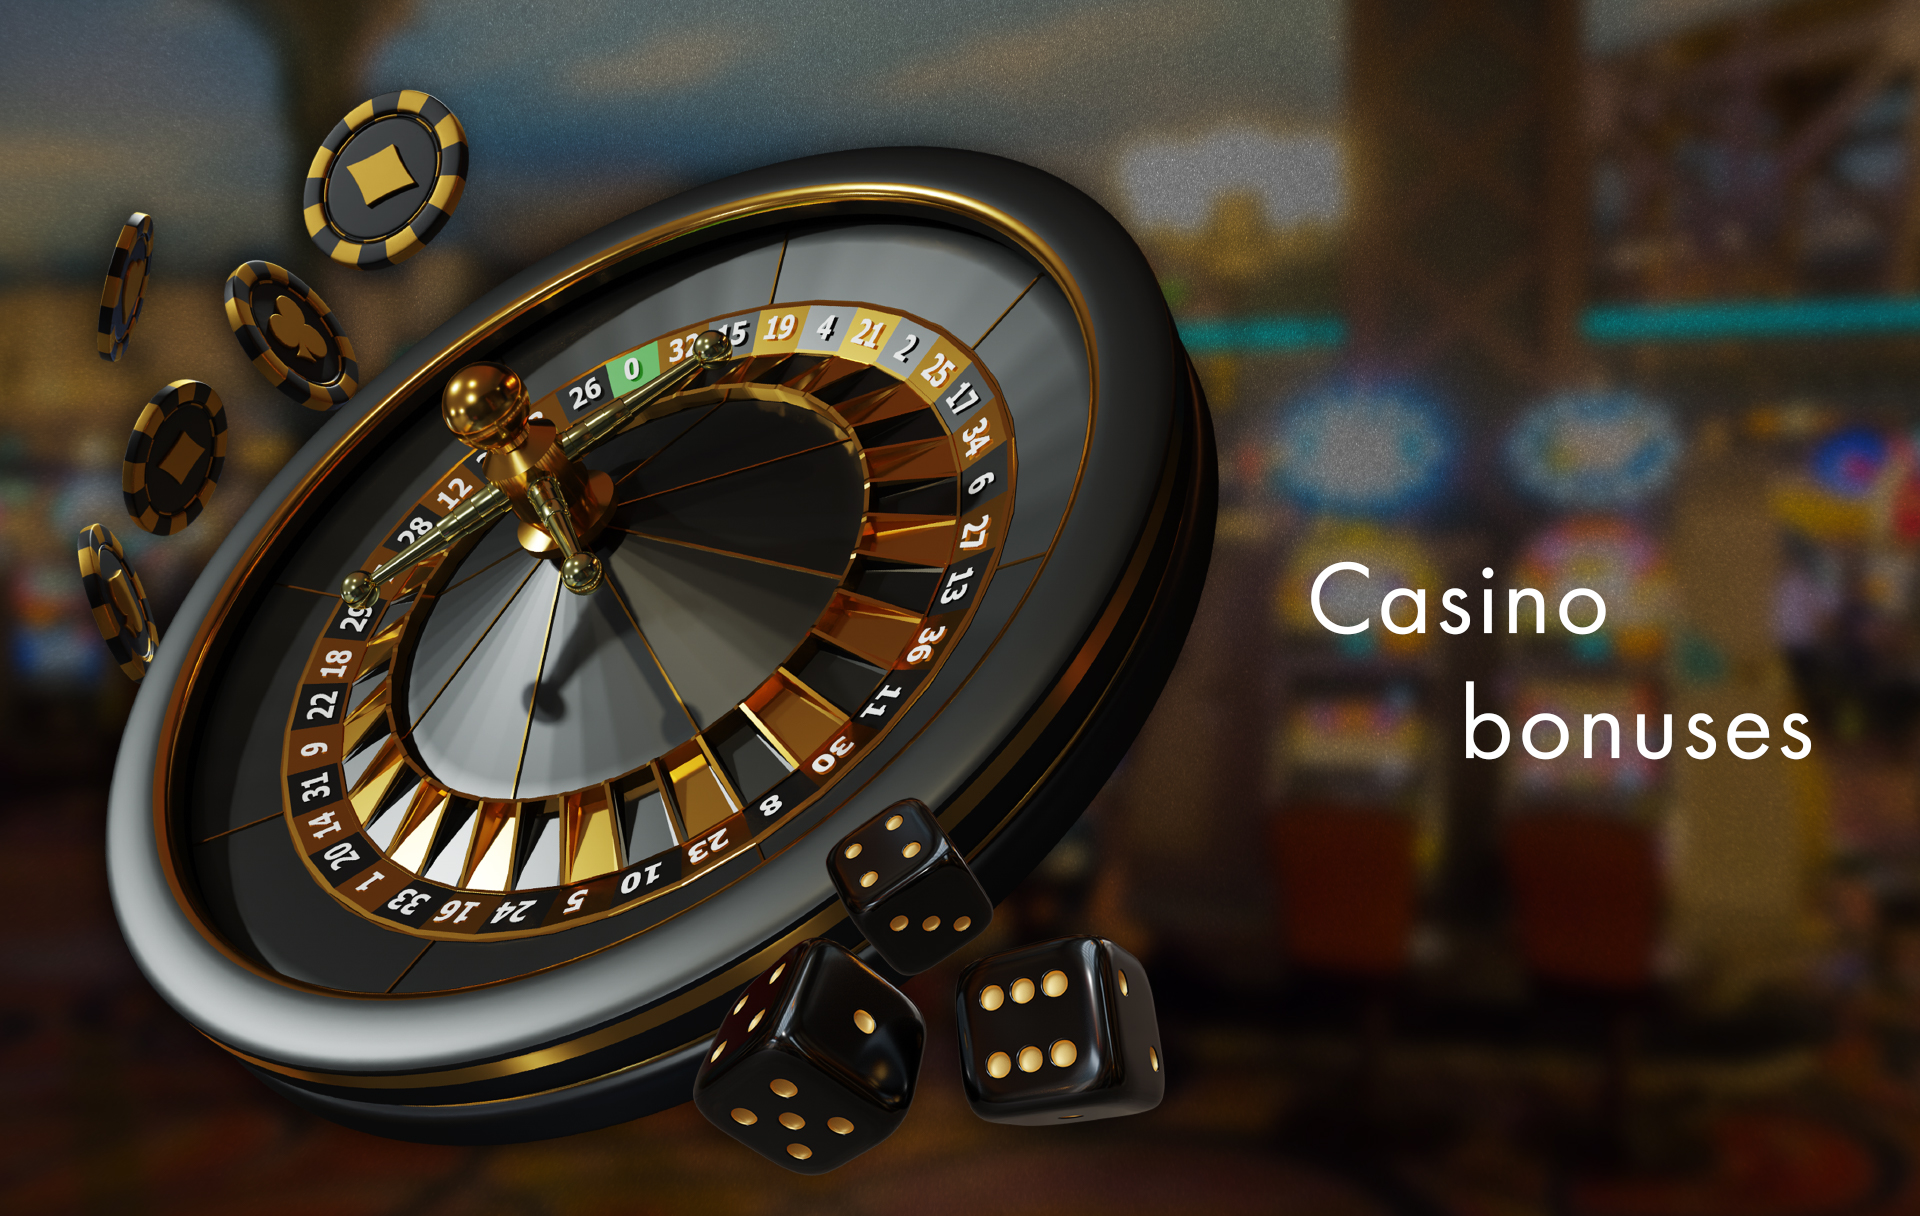 Some of the bonuses you can spend in the casino section.